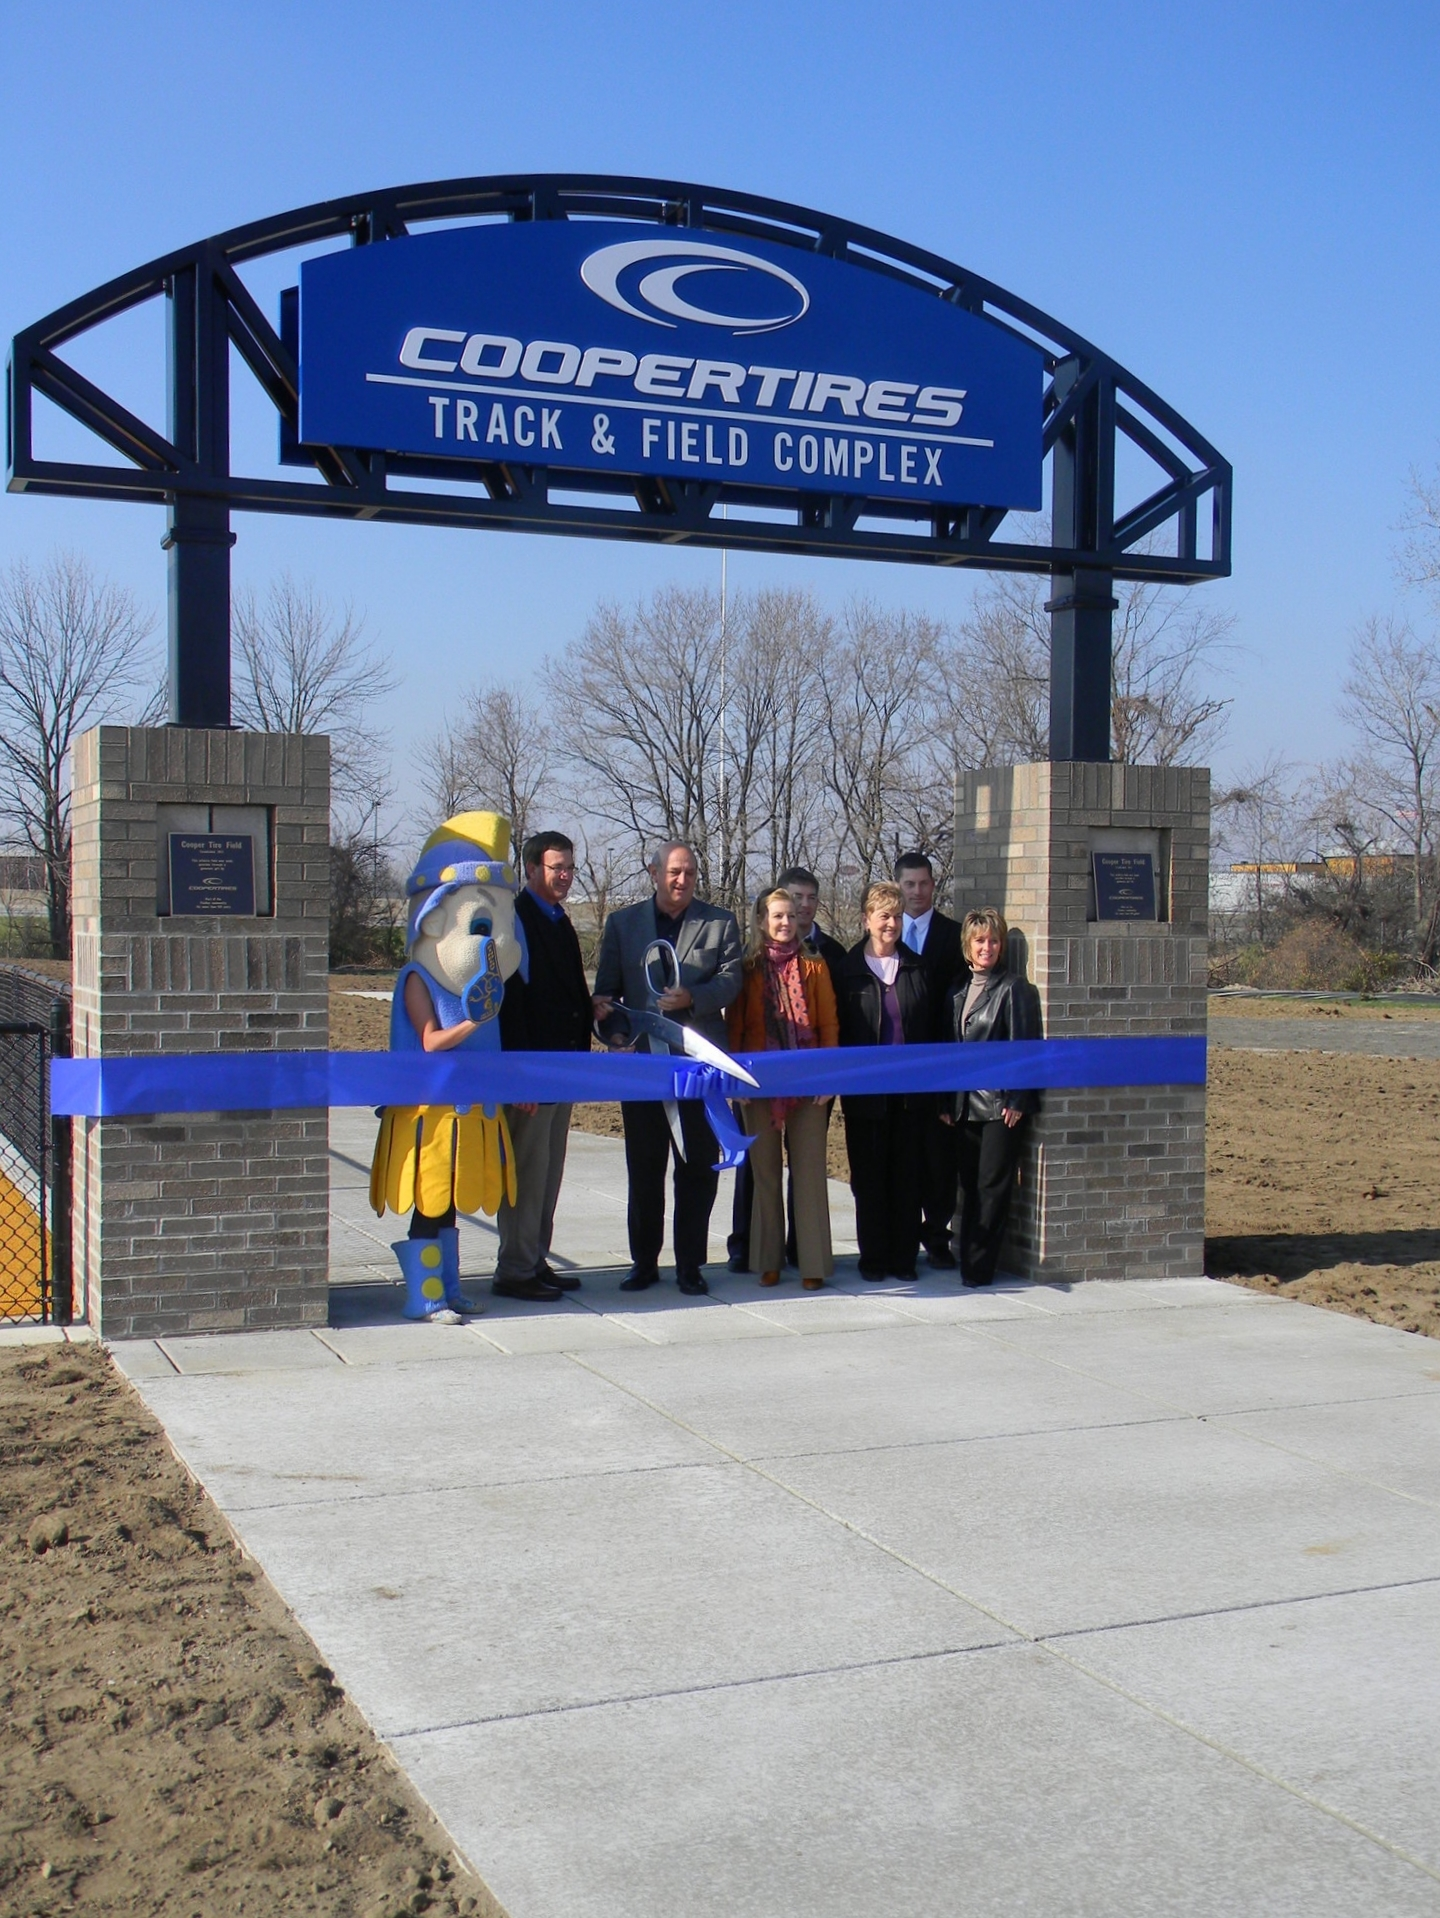 www.rcmarchitects.com - findlay city schools - coopertires track field complex (1)